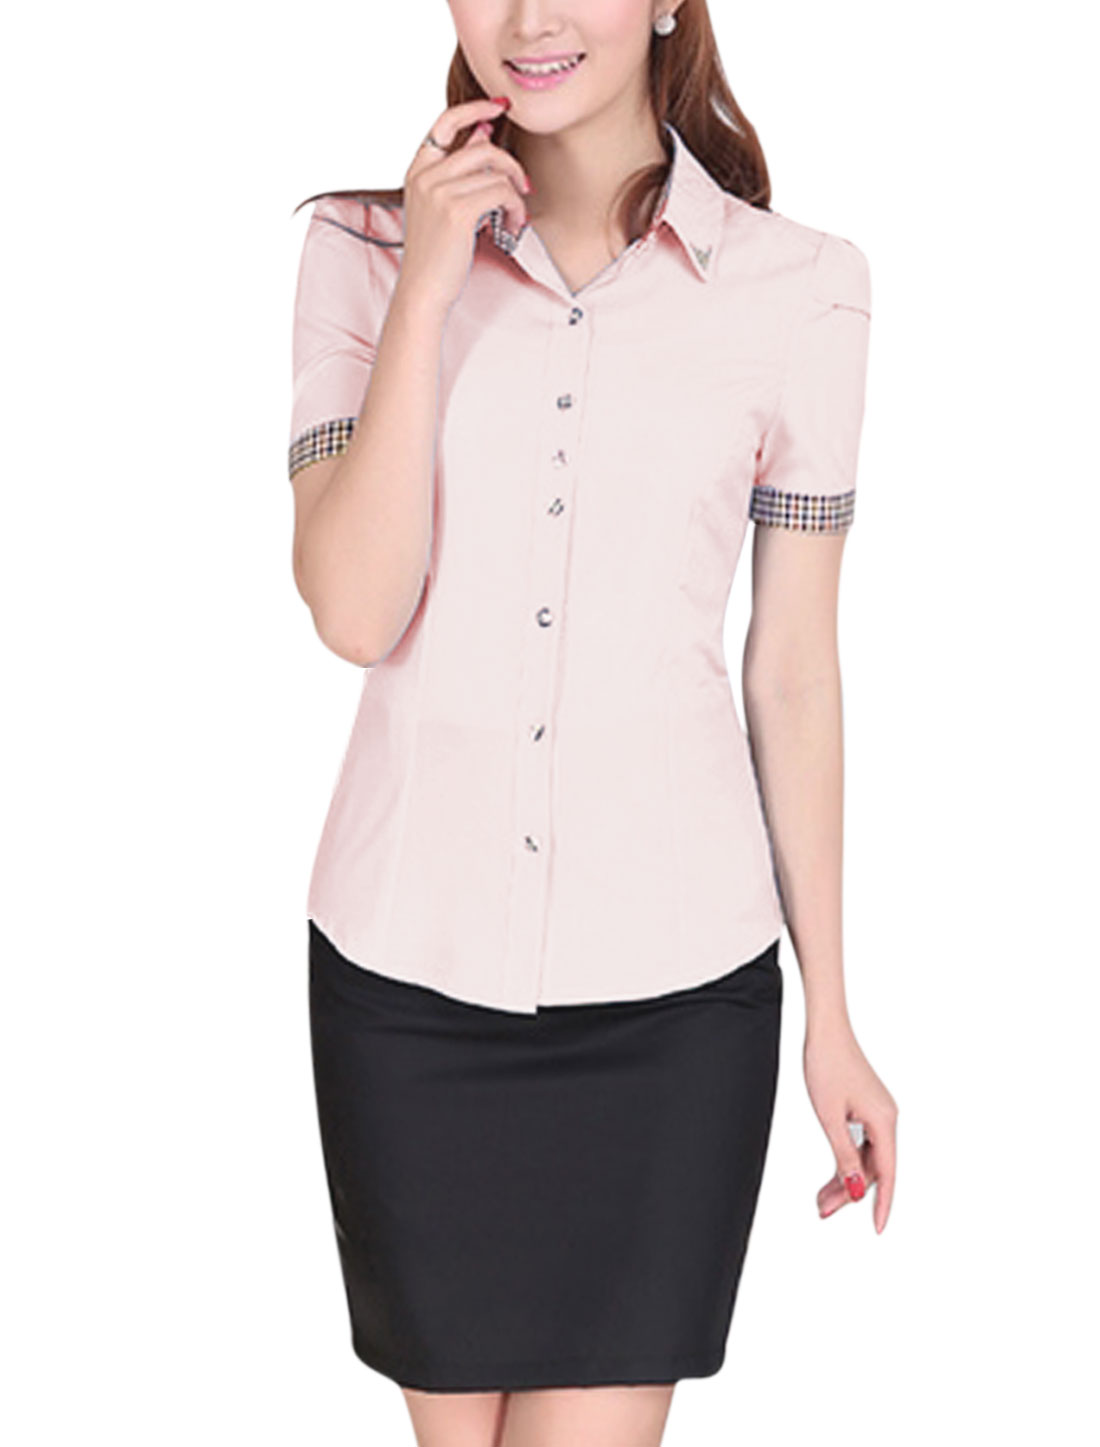 Lady Elegant Short Sleeve Plaids Detail Rivet Decor Shirt Pink M